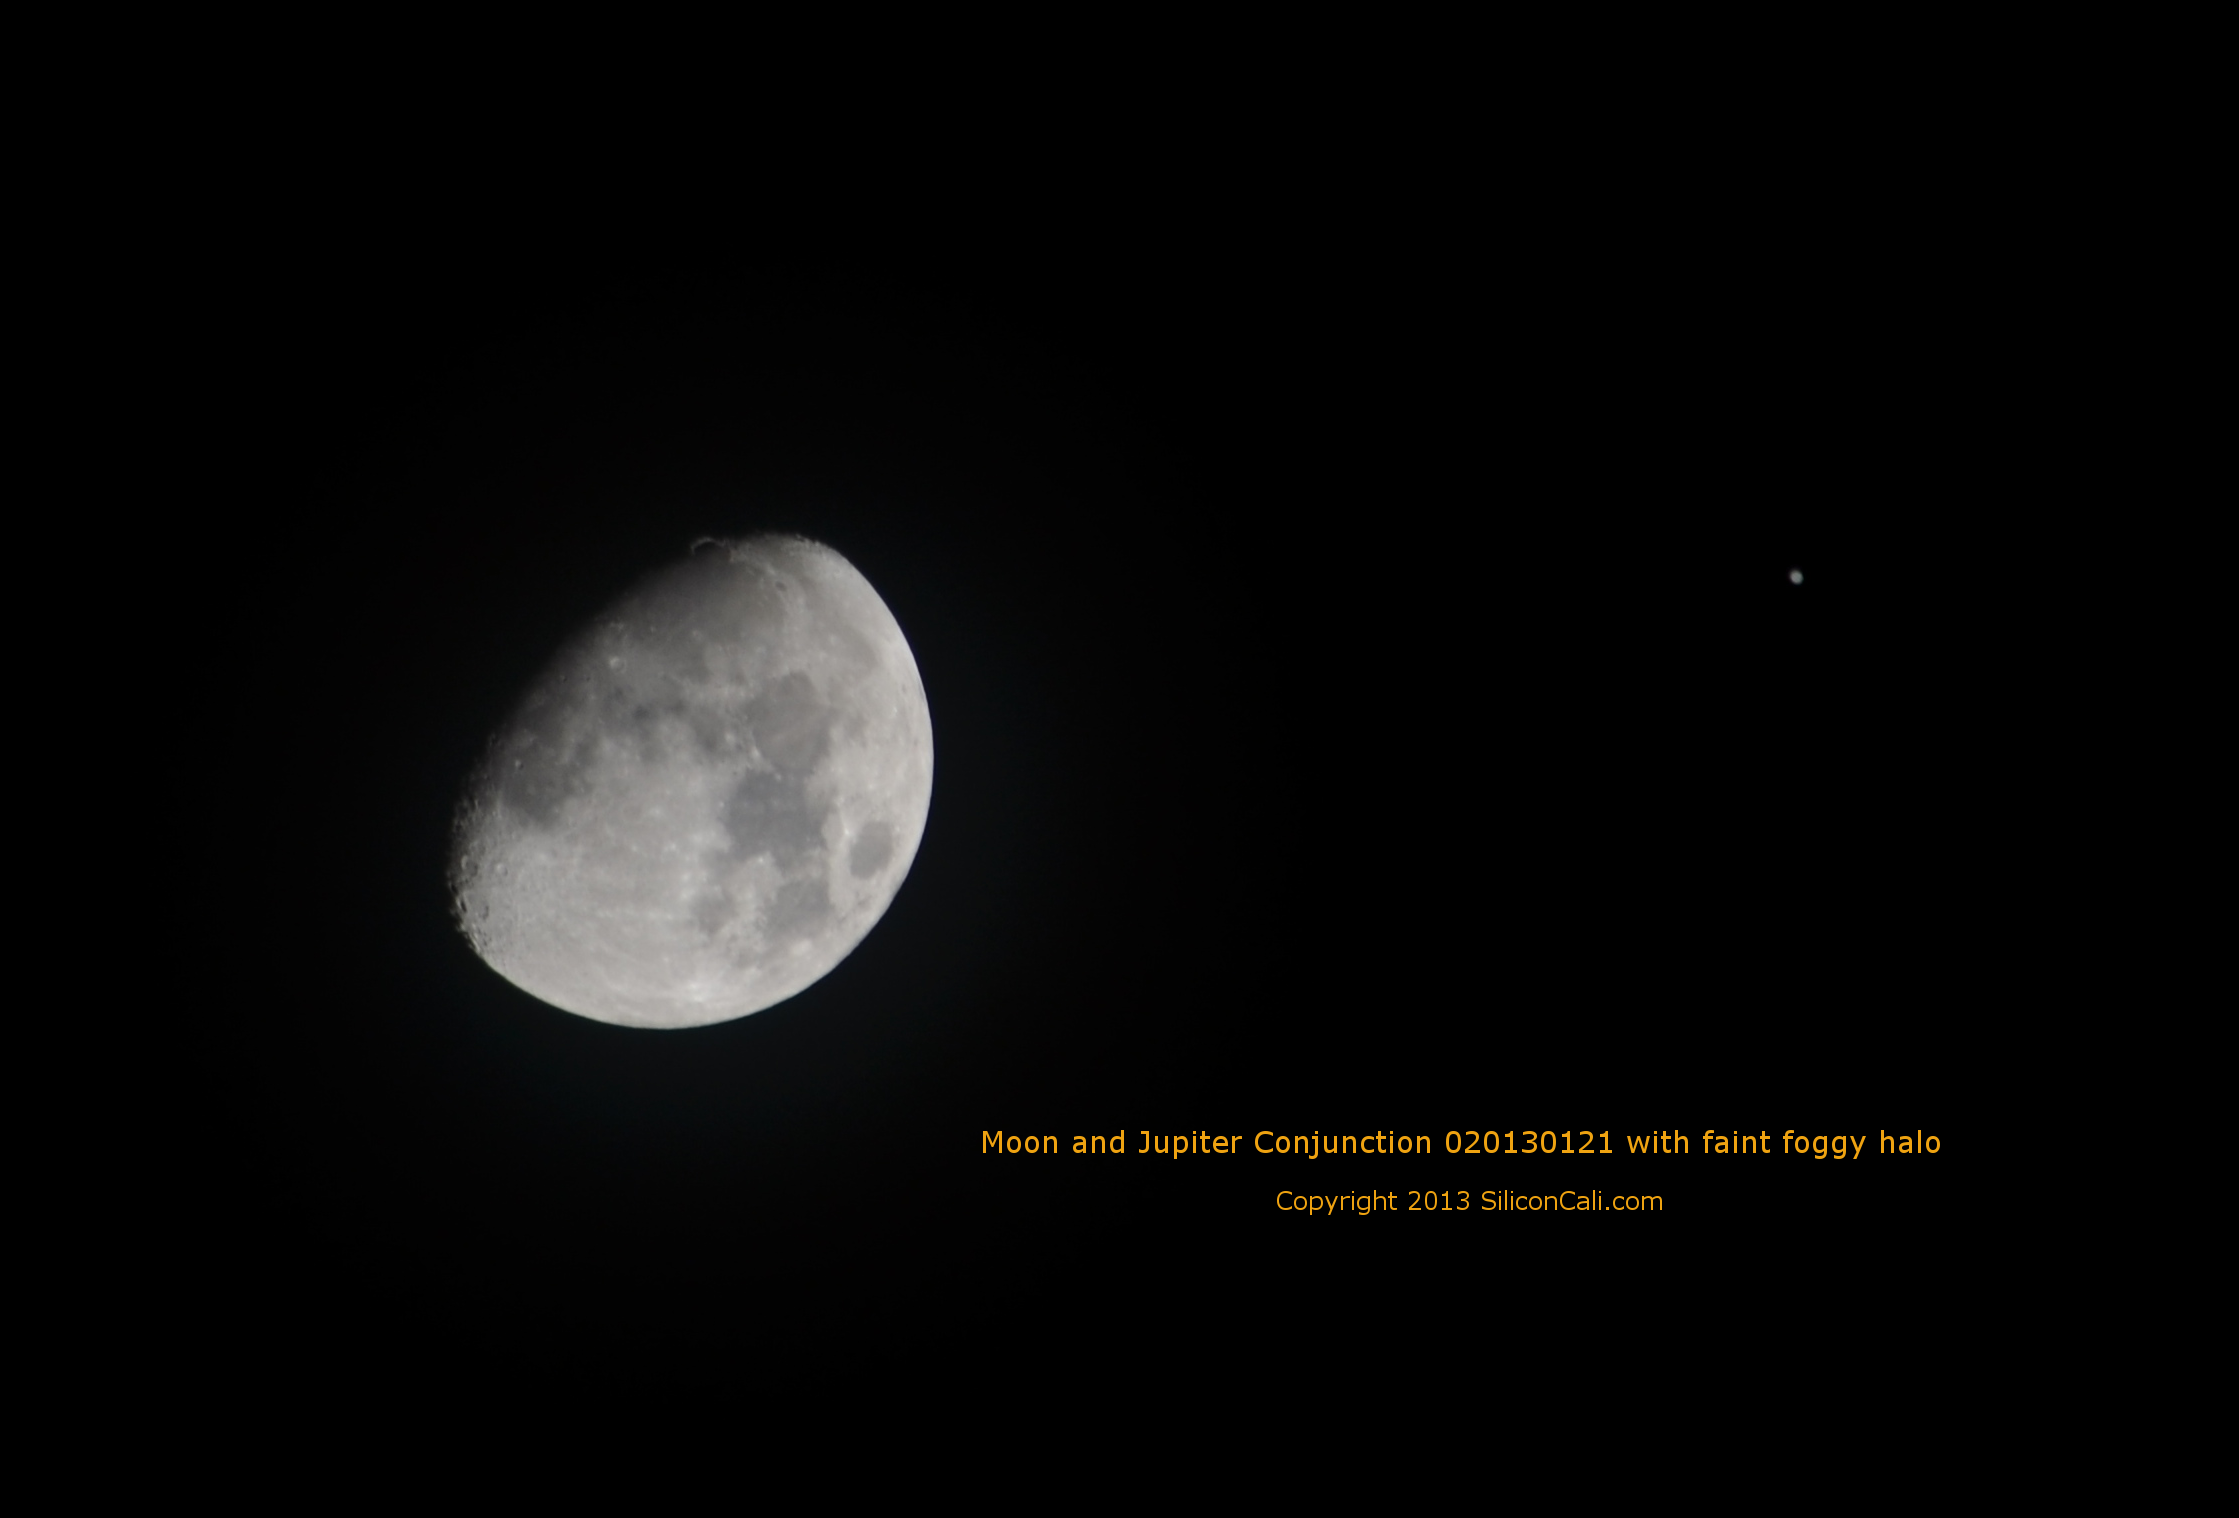 Moon_and_Jupiter_Conjunction_foggy_halo_020130121_SiliconCali.com